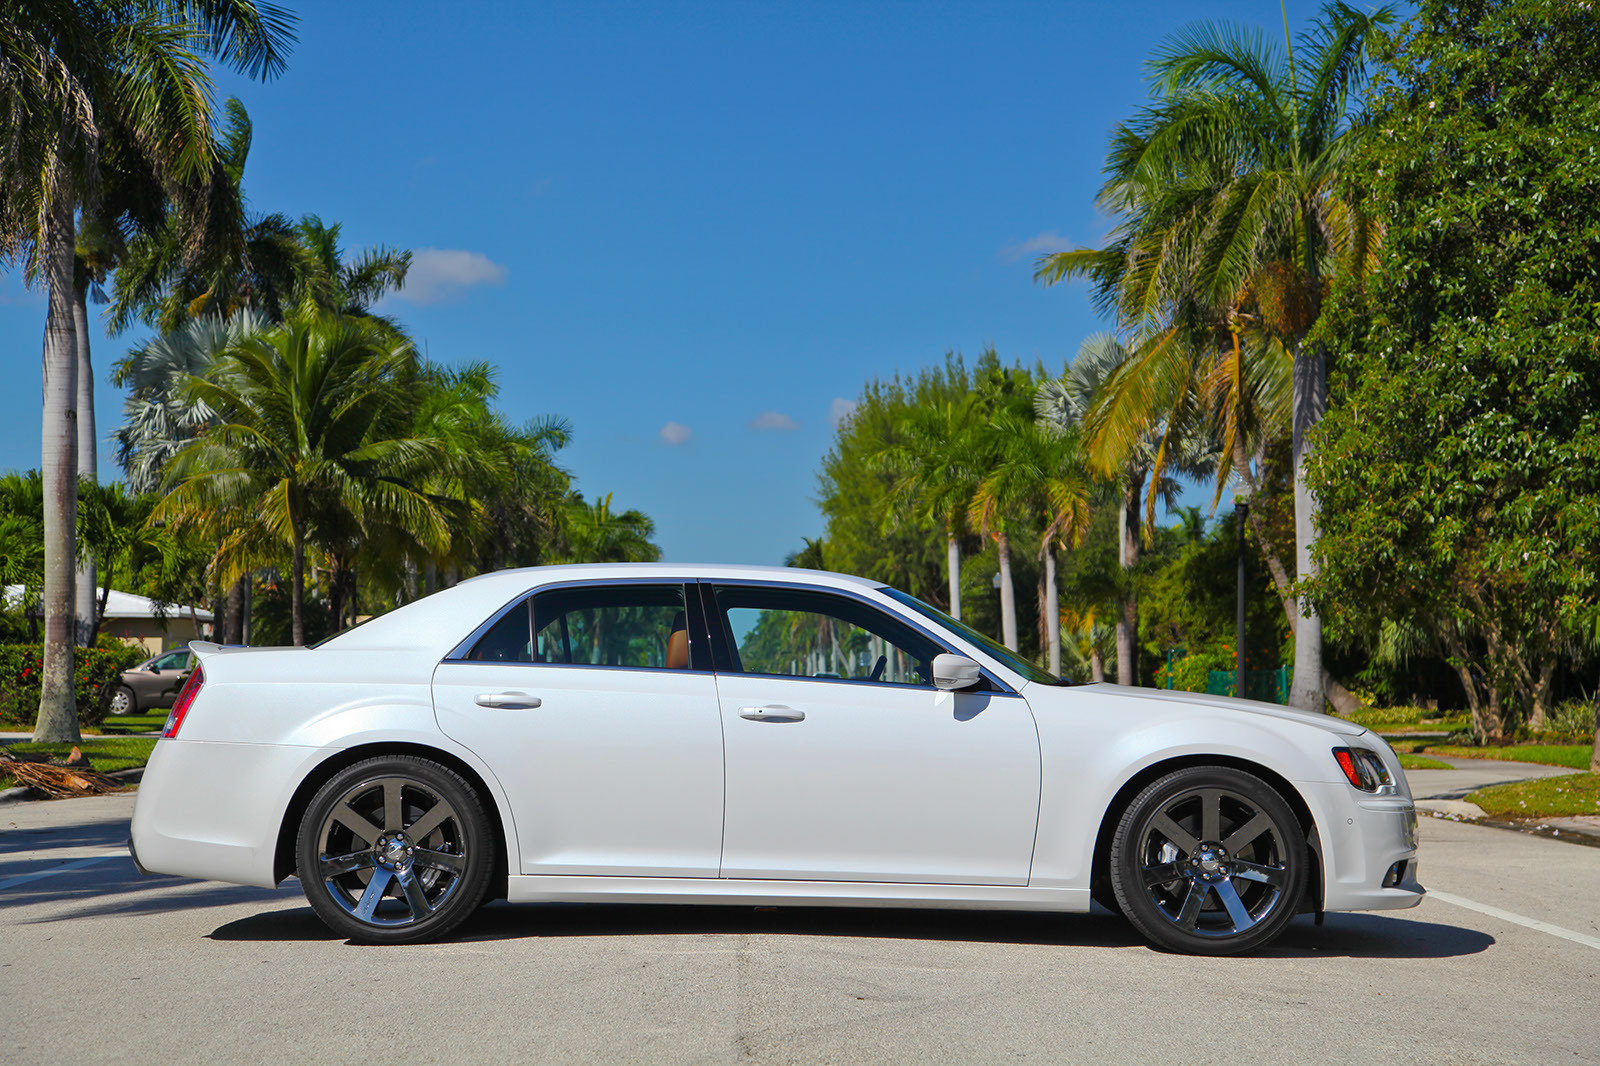 2013 chrysler 300 srt8 picture 528582 car review top speed. Cars Review. Best American Auto & Cars Review